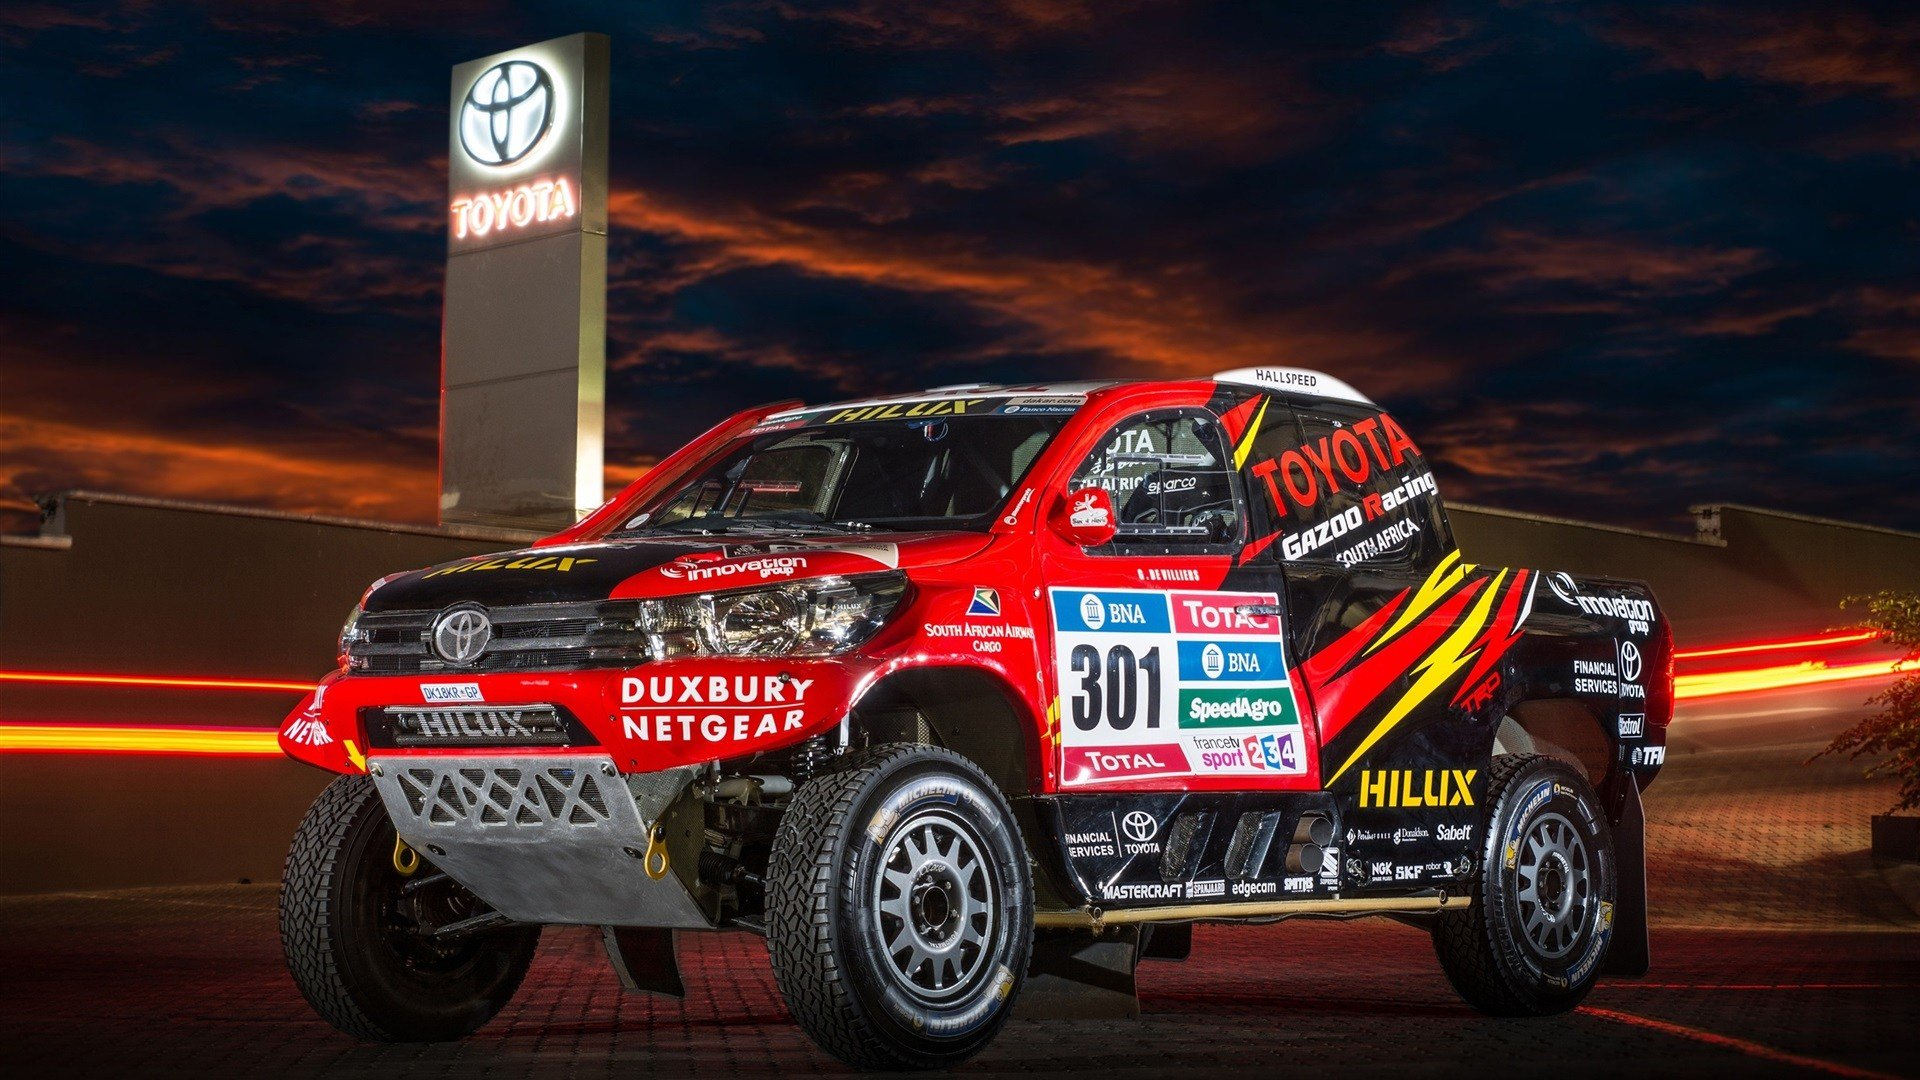 New Download Wallpaper 1920X1080 Toyota Hilux Suv Car Dakar On This Month